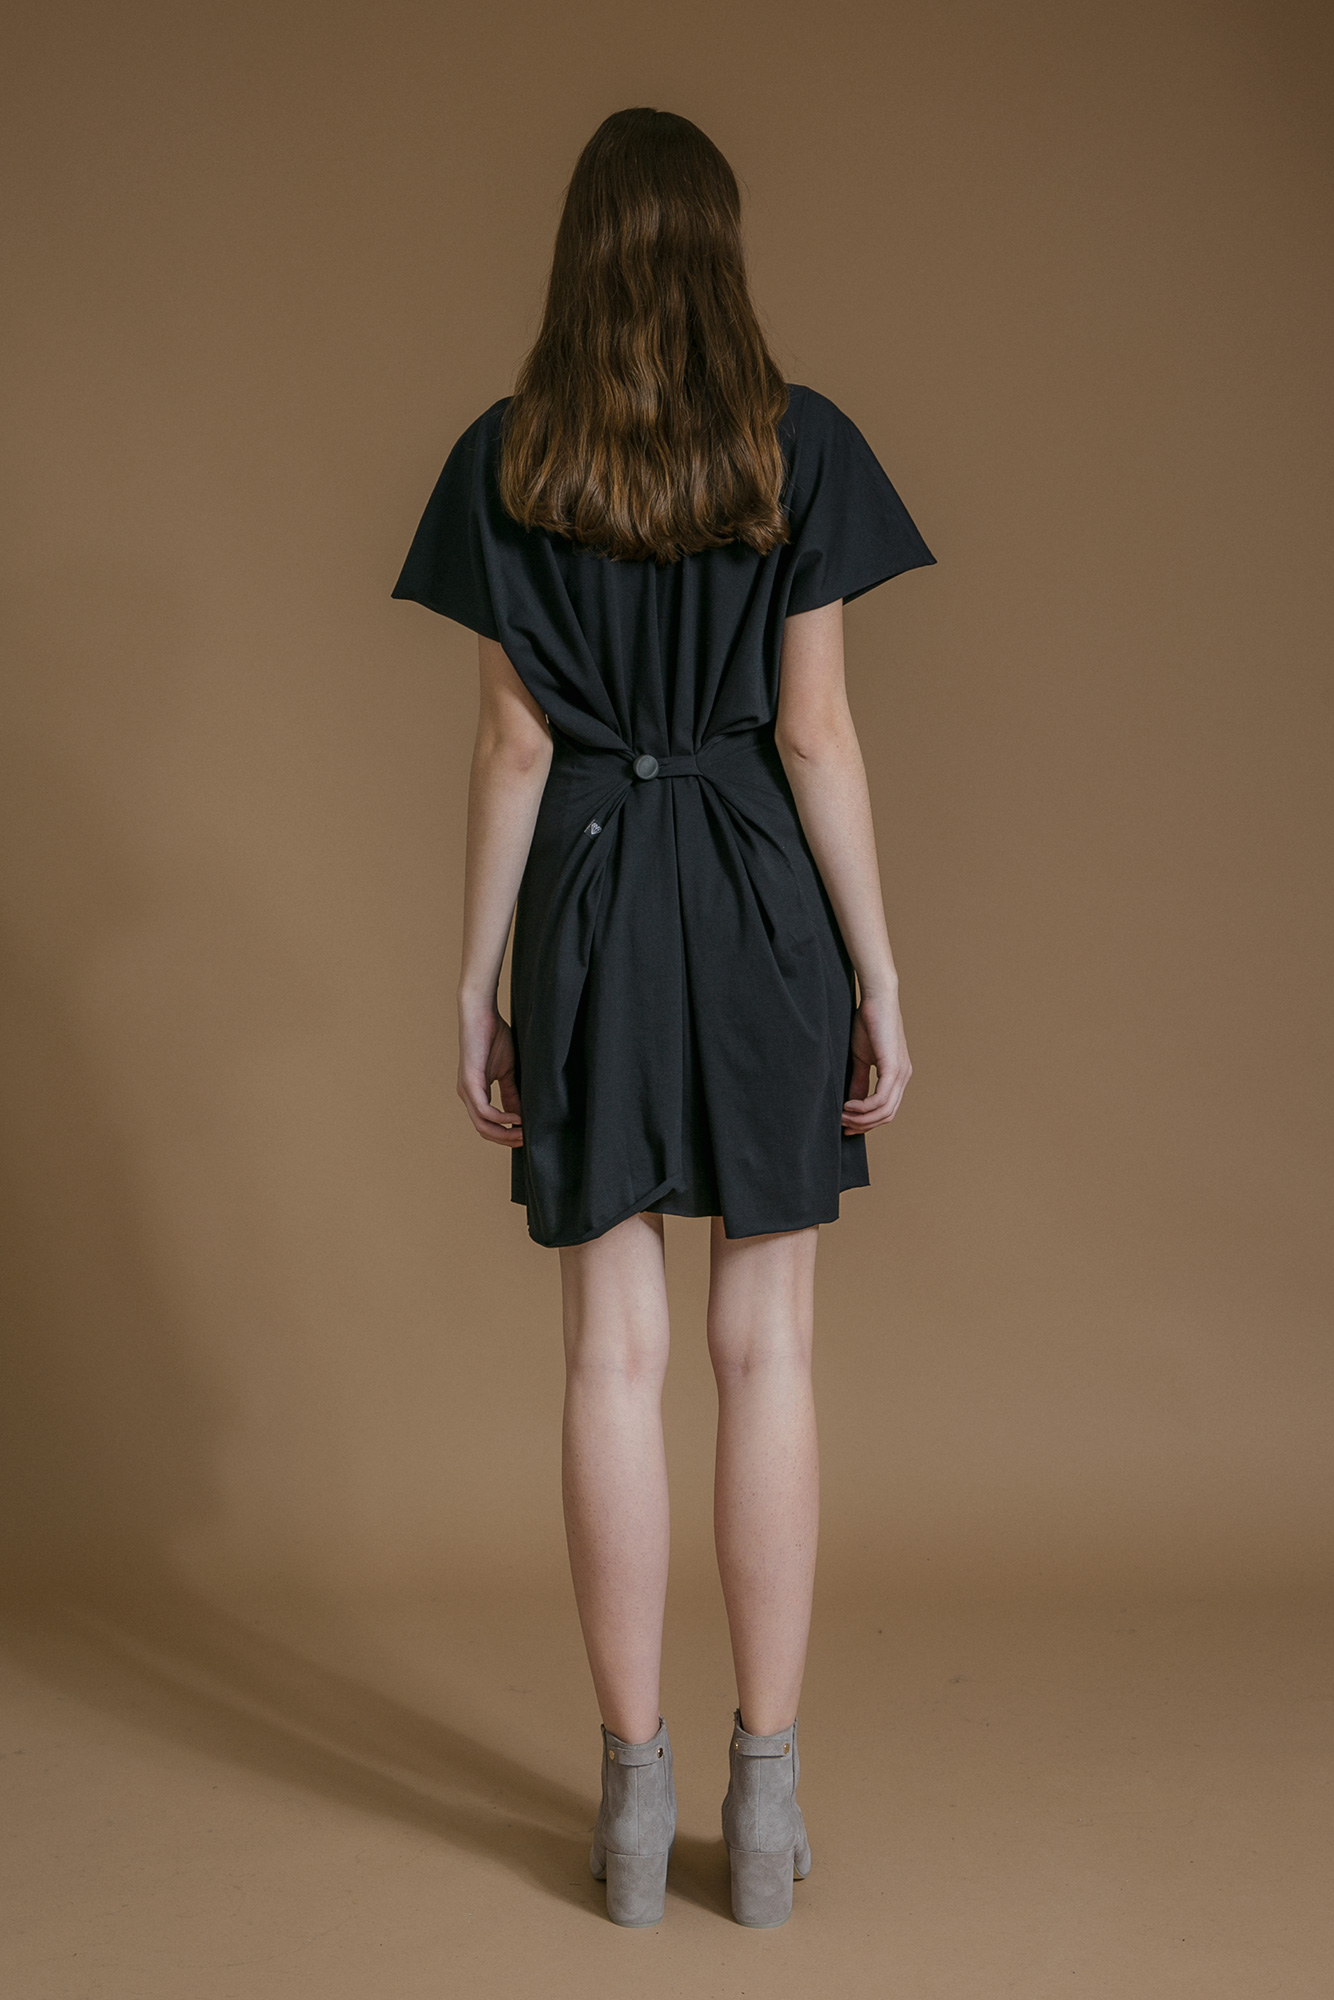 wrns_basics_gombik-dress_03